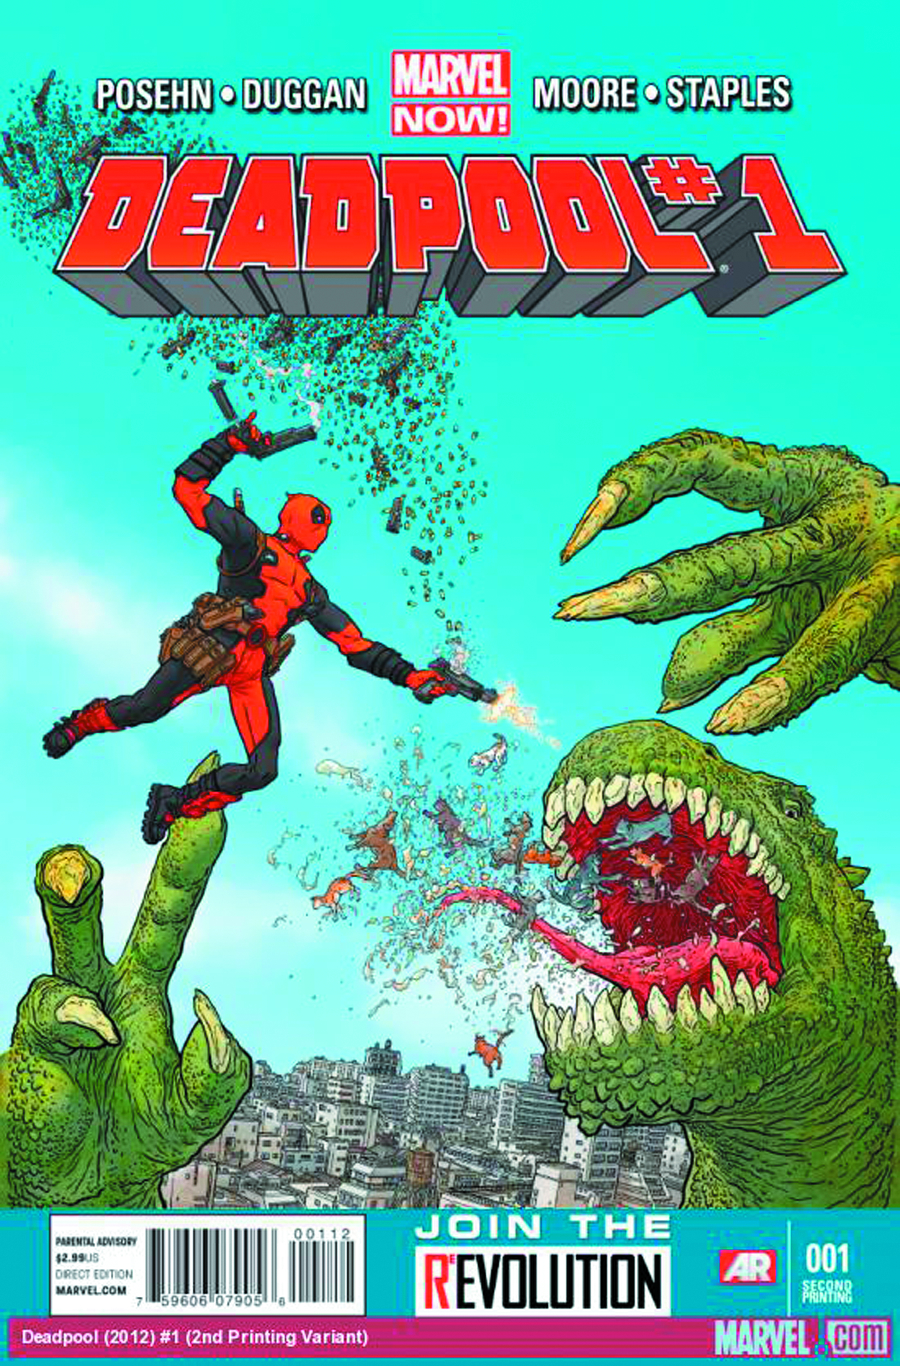 DEADPOOL #1 3RD PTG DARROW VAR NOW